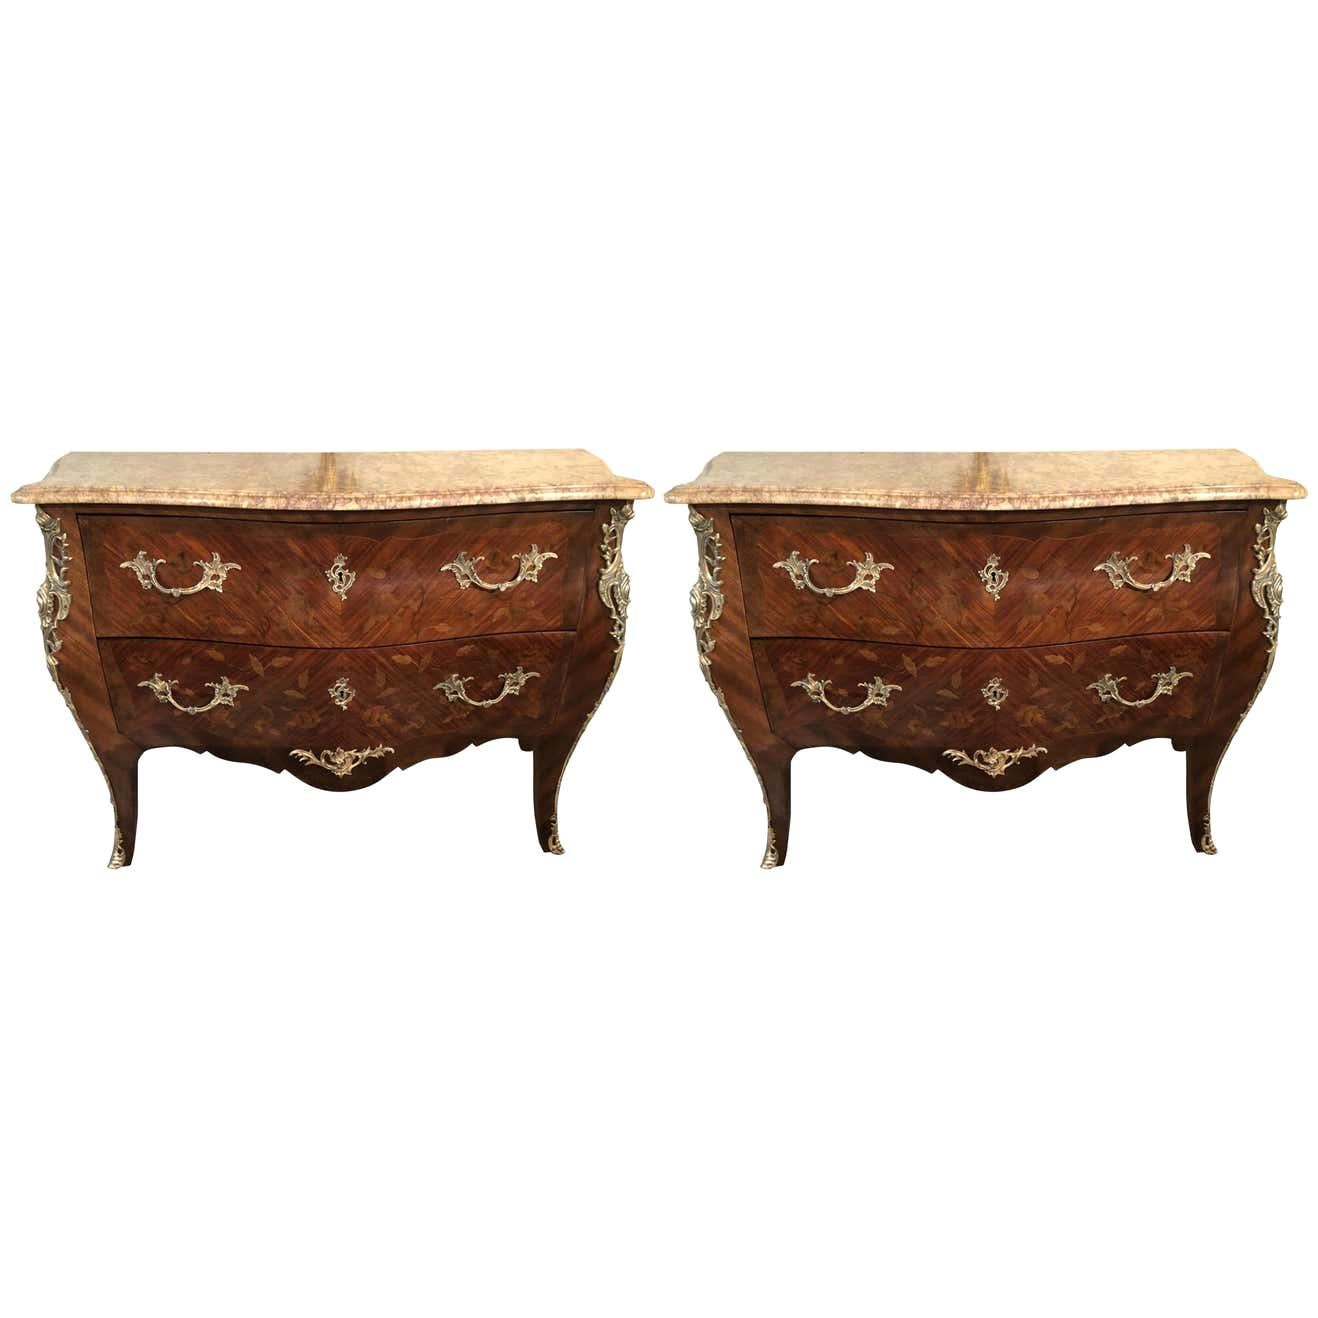 Pair of Louis XV Style Bombe Bronze Mounted Commodes, Nightstands or Chests